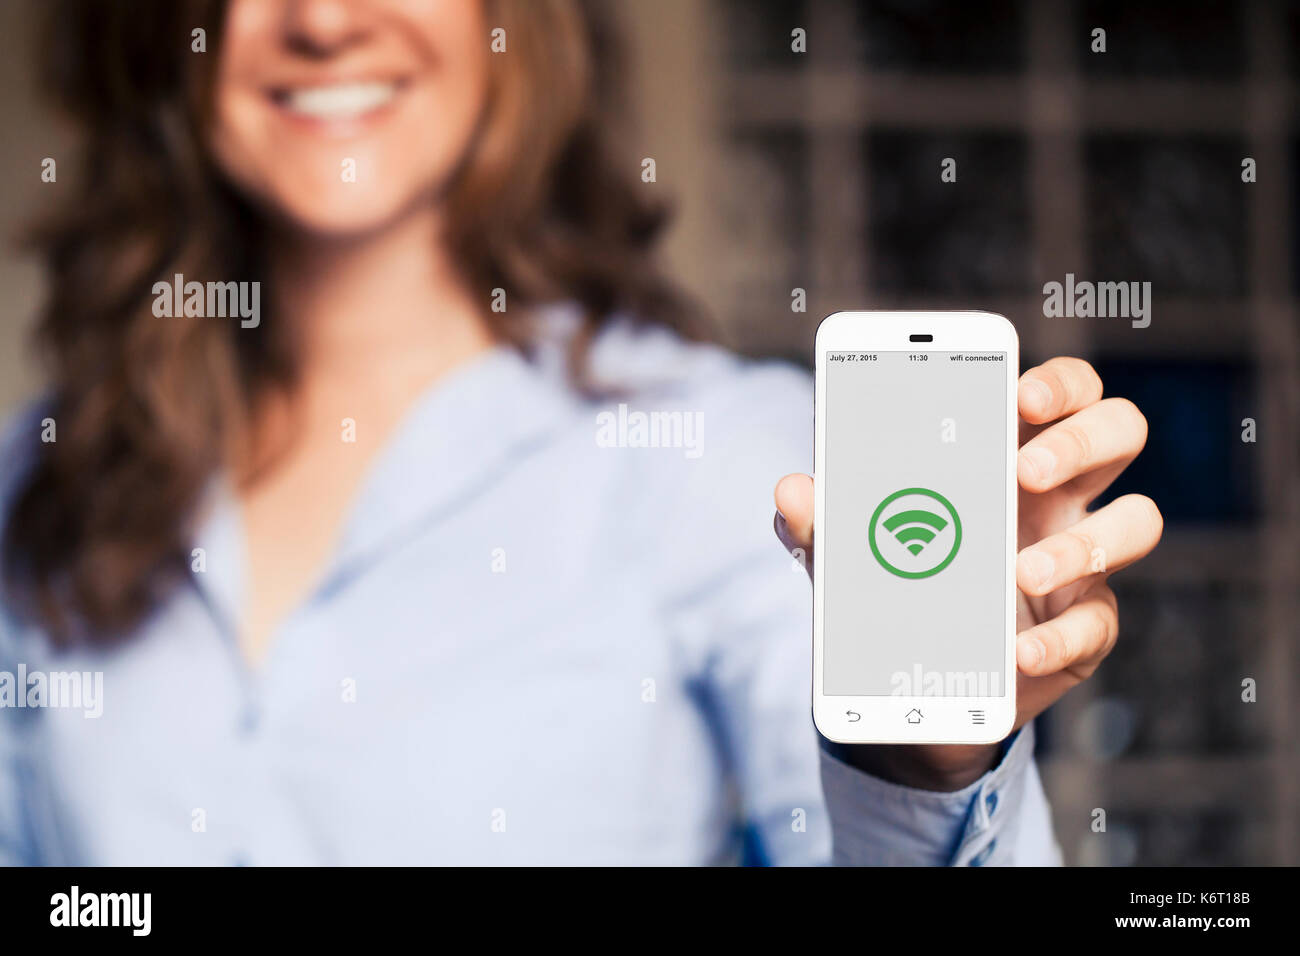 Smiling woman showing a mobile phone screen with a green wifi icon in the screen. Stock Photo